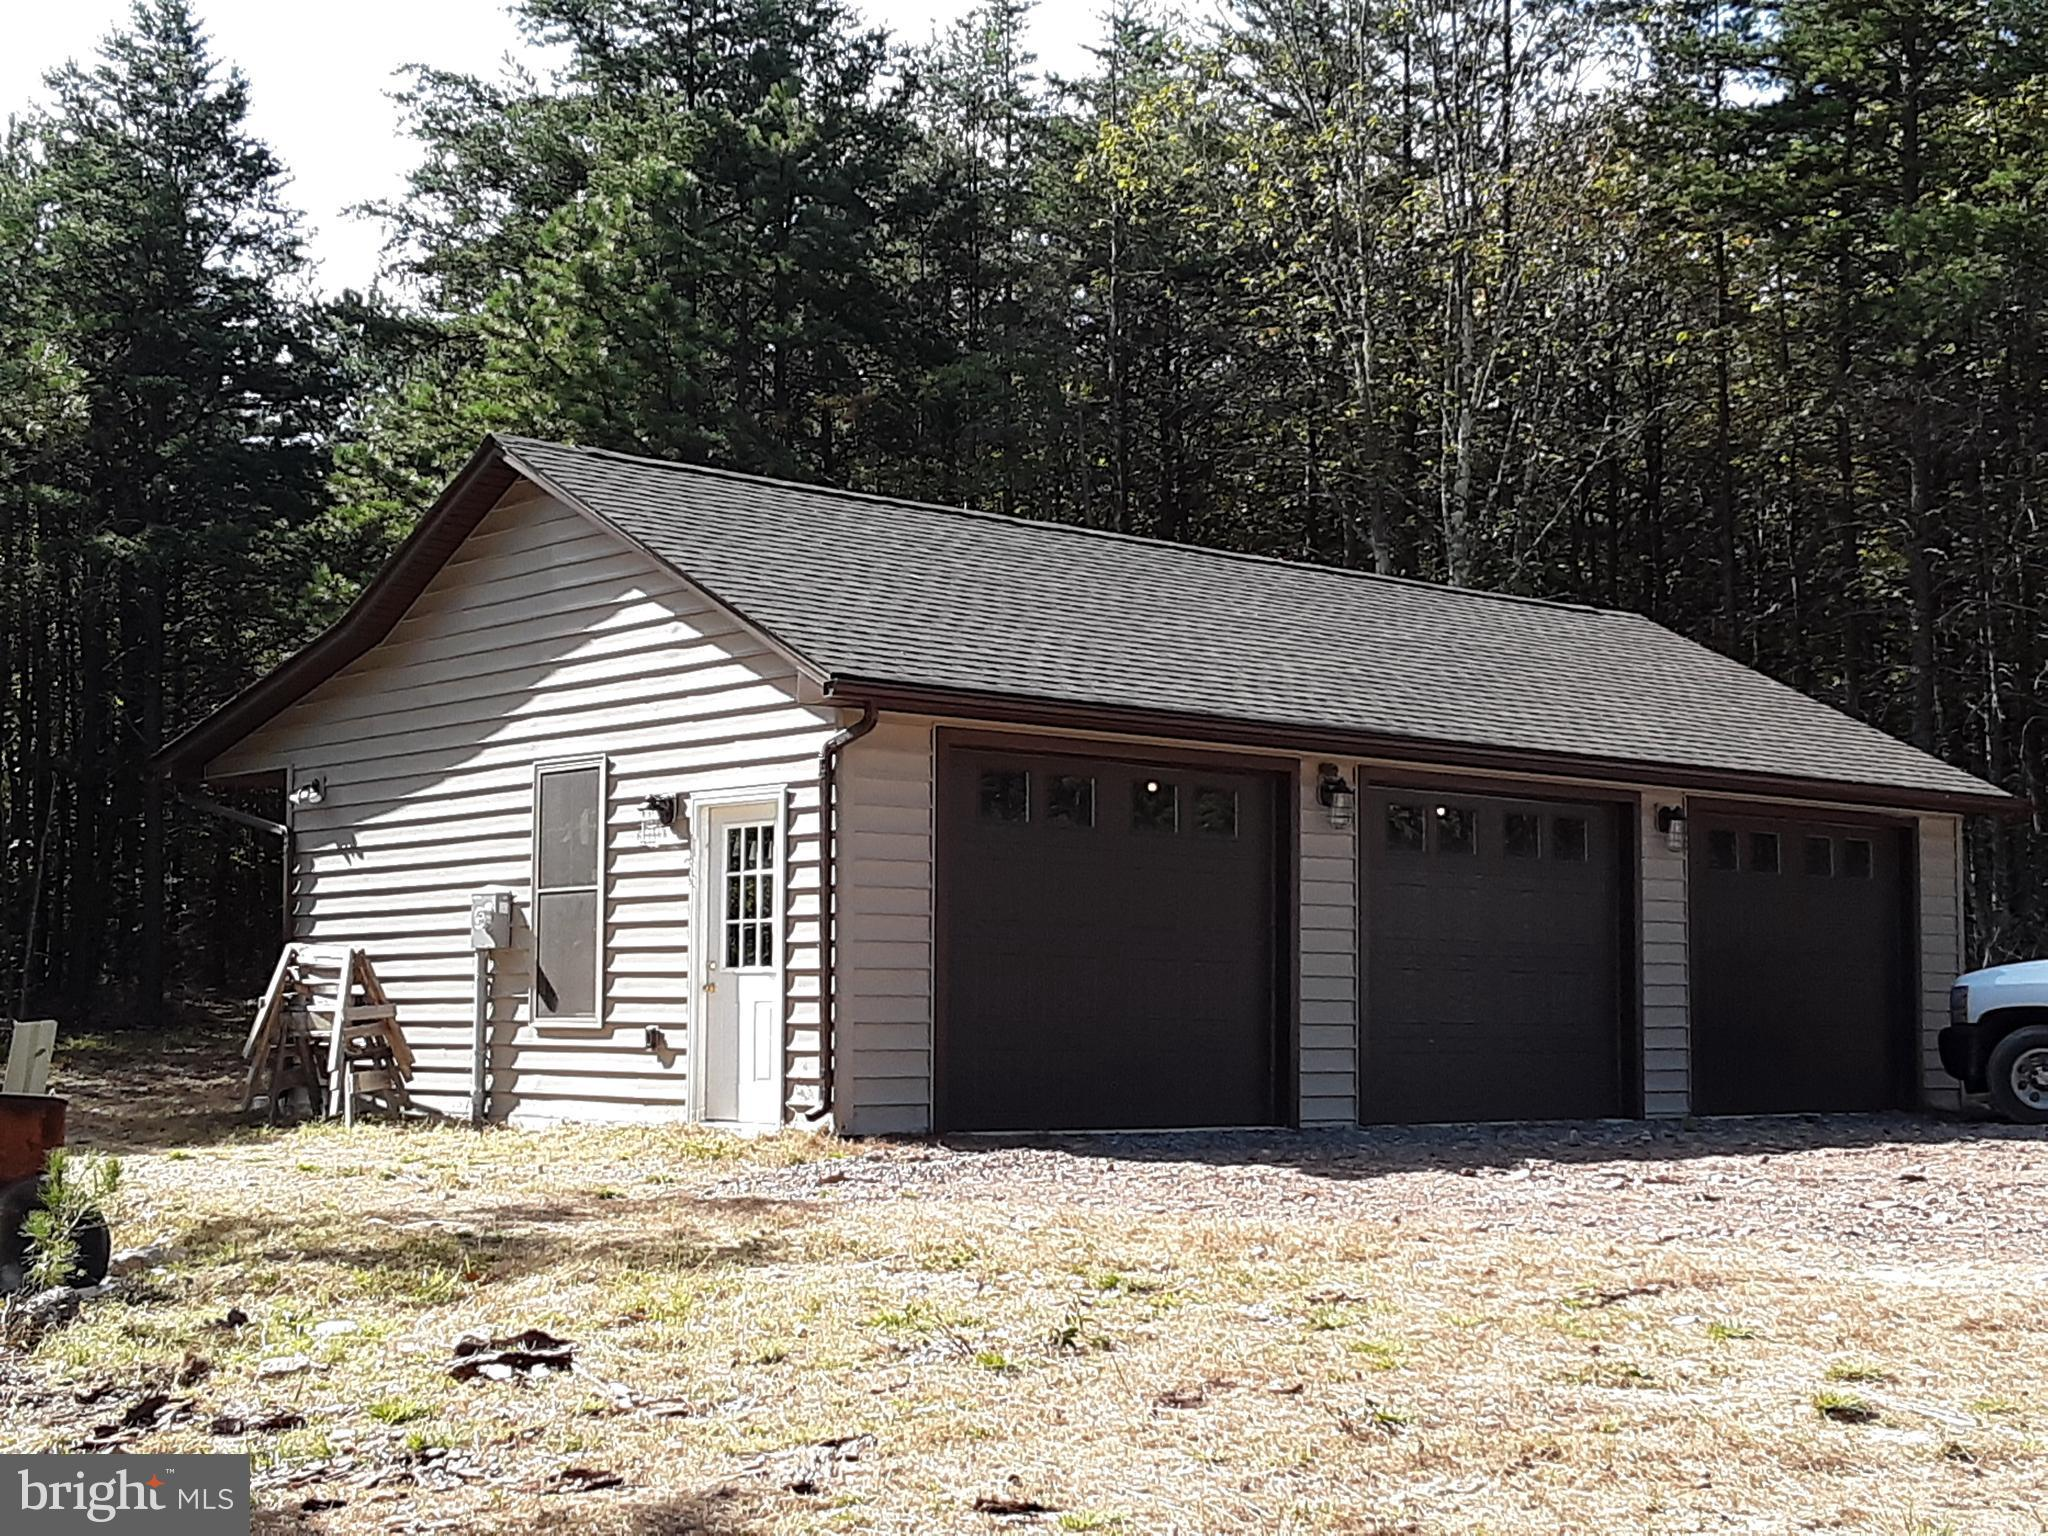 LOOKING TO OWN A PIECE OF HEAVEN THEN CHECK OUT THIS 24.745 PRIVATE ACRES WITH MILLION $$$ VIEWS . 3 BED 2.5 BATH CAPE COD 2 CAR GARAGE , FIREPLACE & WOOD STOVE FOUNDATION IS IN , 3 CAR DETACHED  GARAGE IS W/ ROUGH IN PLUMBING. BRING THE FISHING POLES FOR YOUR OWN PRIVATE POND. TRAILS WILDLIFE GALORE. BUY AS-IS FOR $179,900 OR THE BUILDER WILL FINISH. $379,900 QUALITY WEEKEND OR YEAR ROUND LIVING.